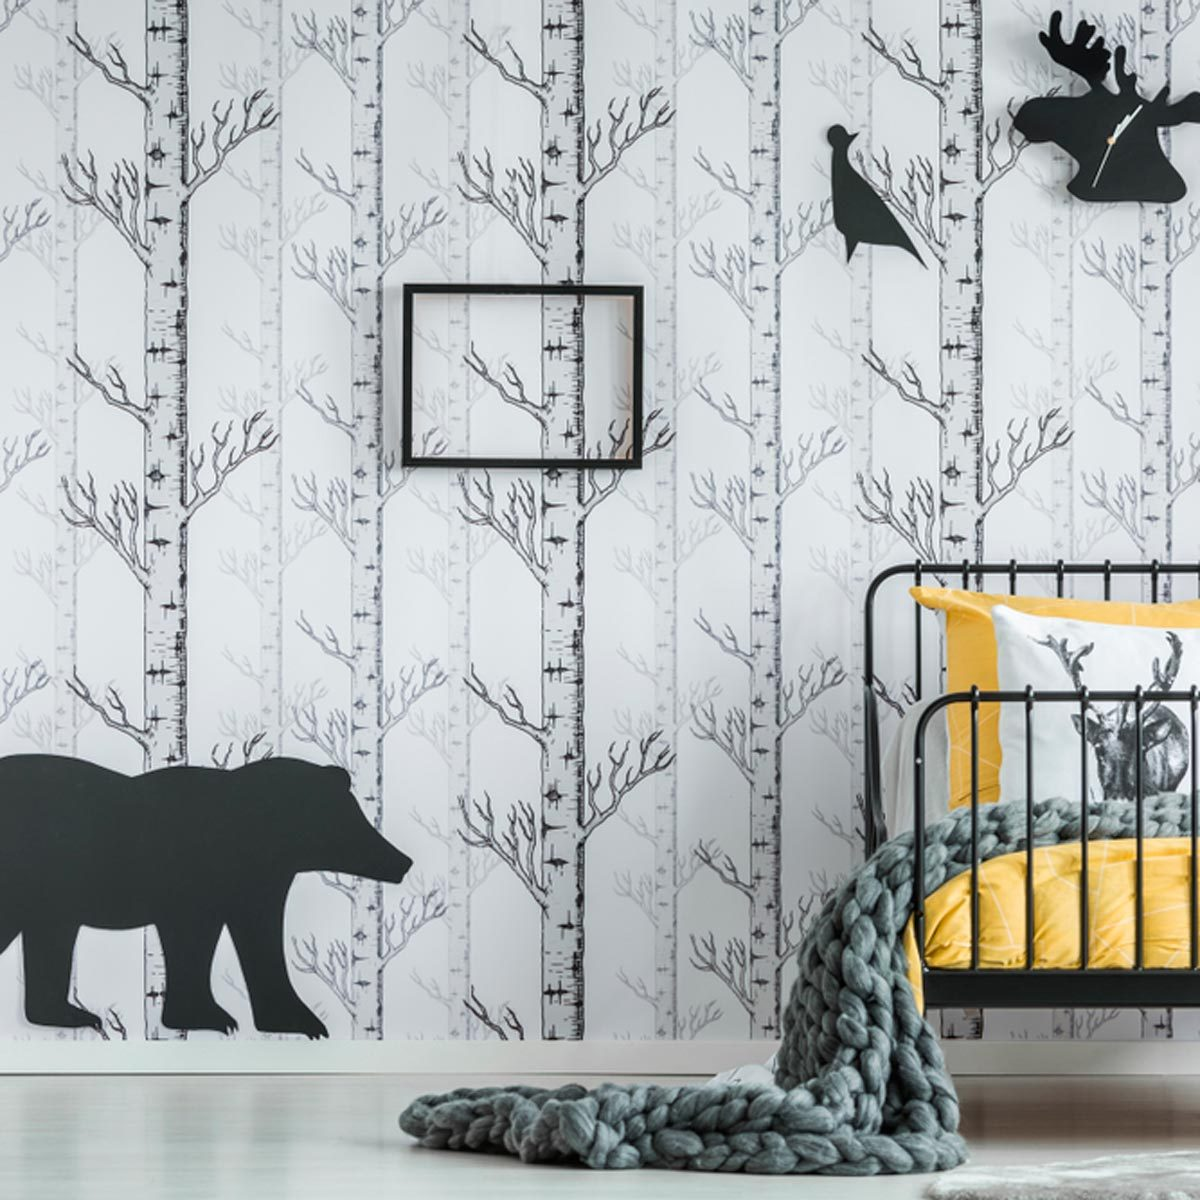 10 Stunning Black And White Bedroom Ideas For Kids